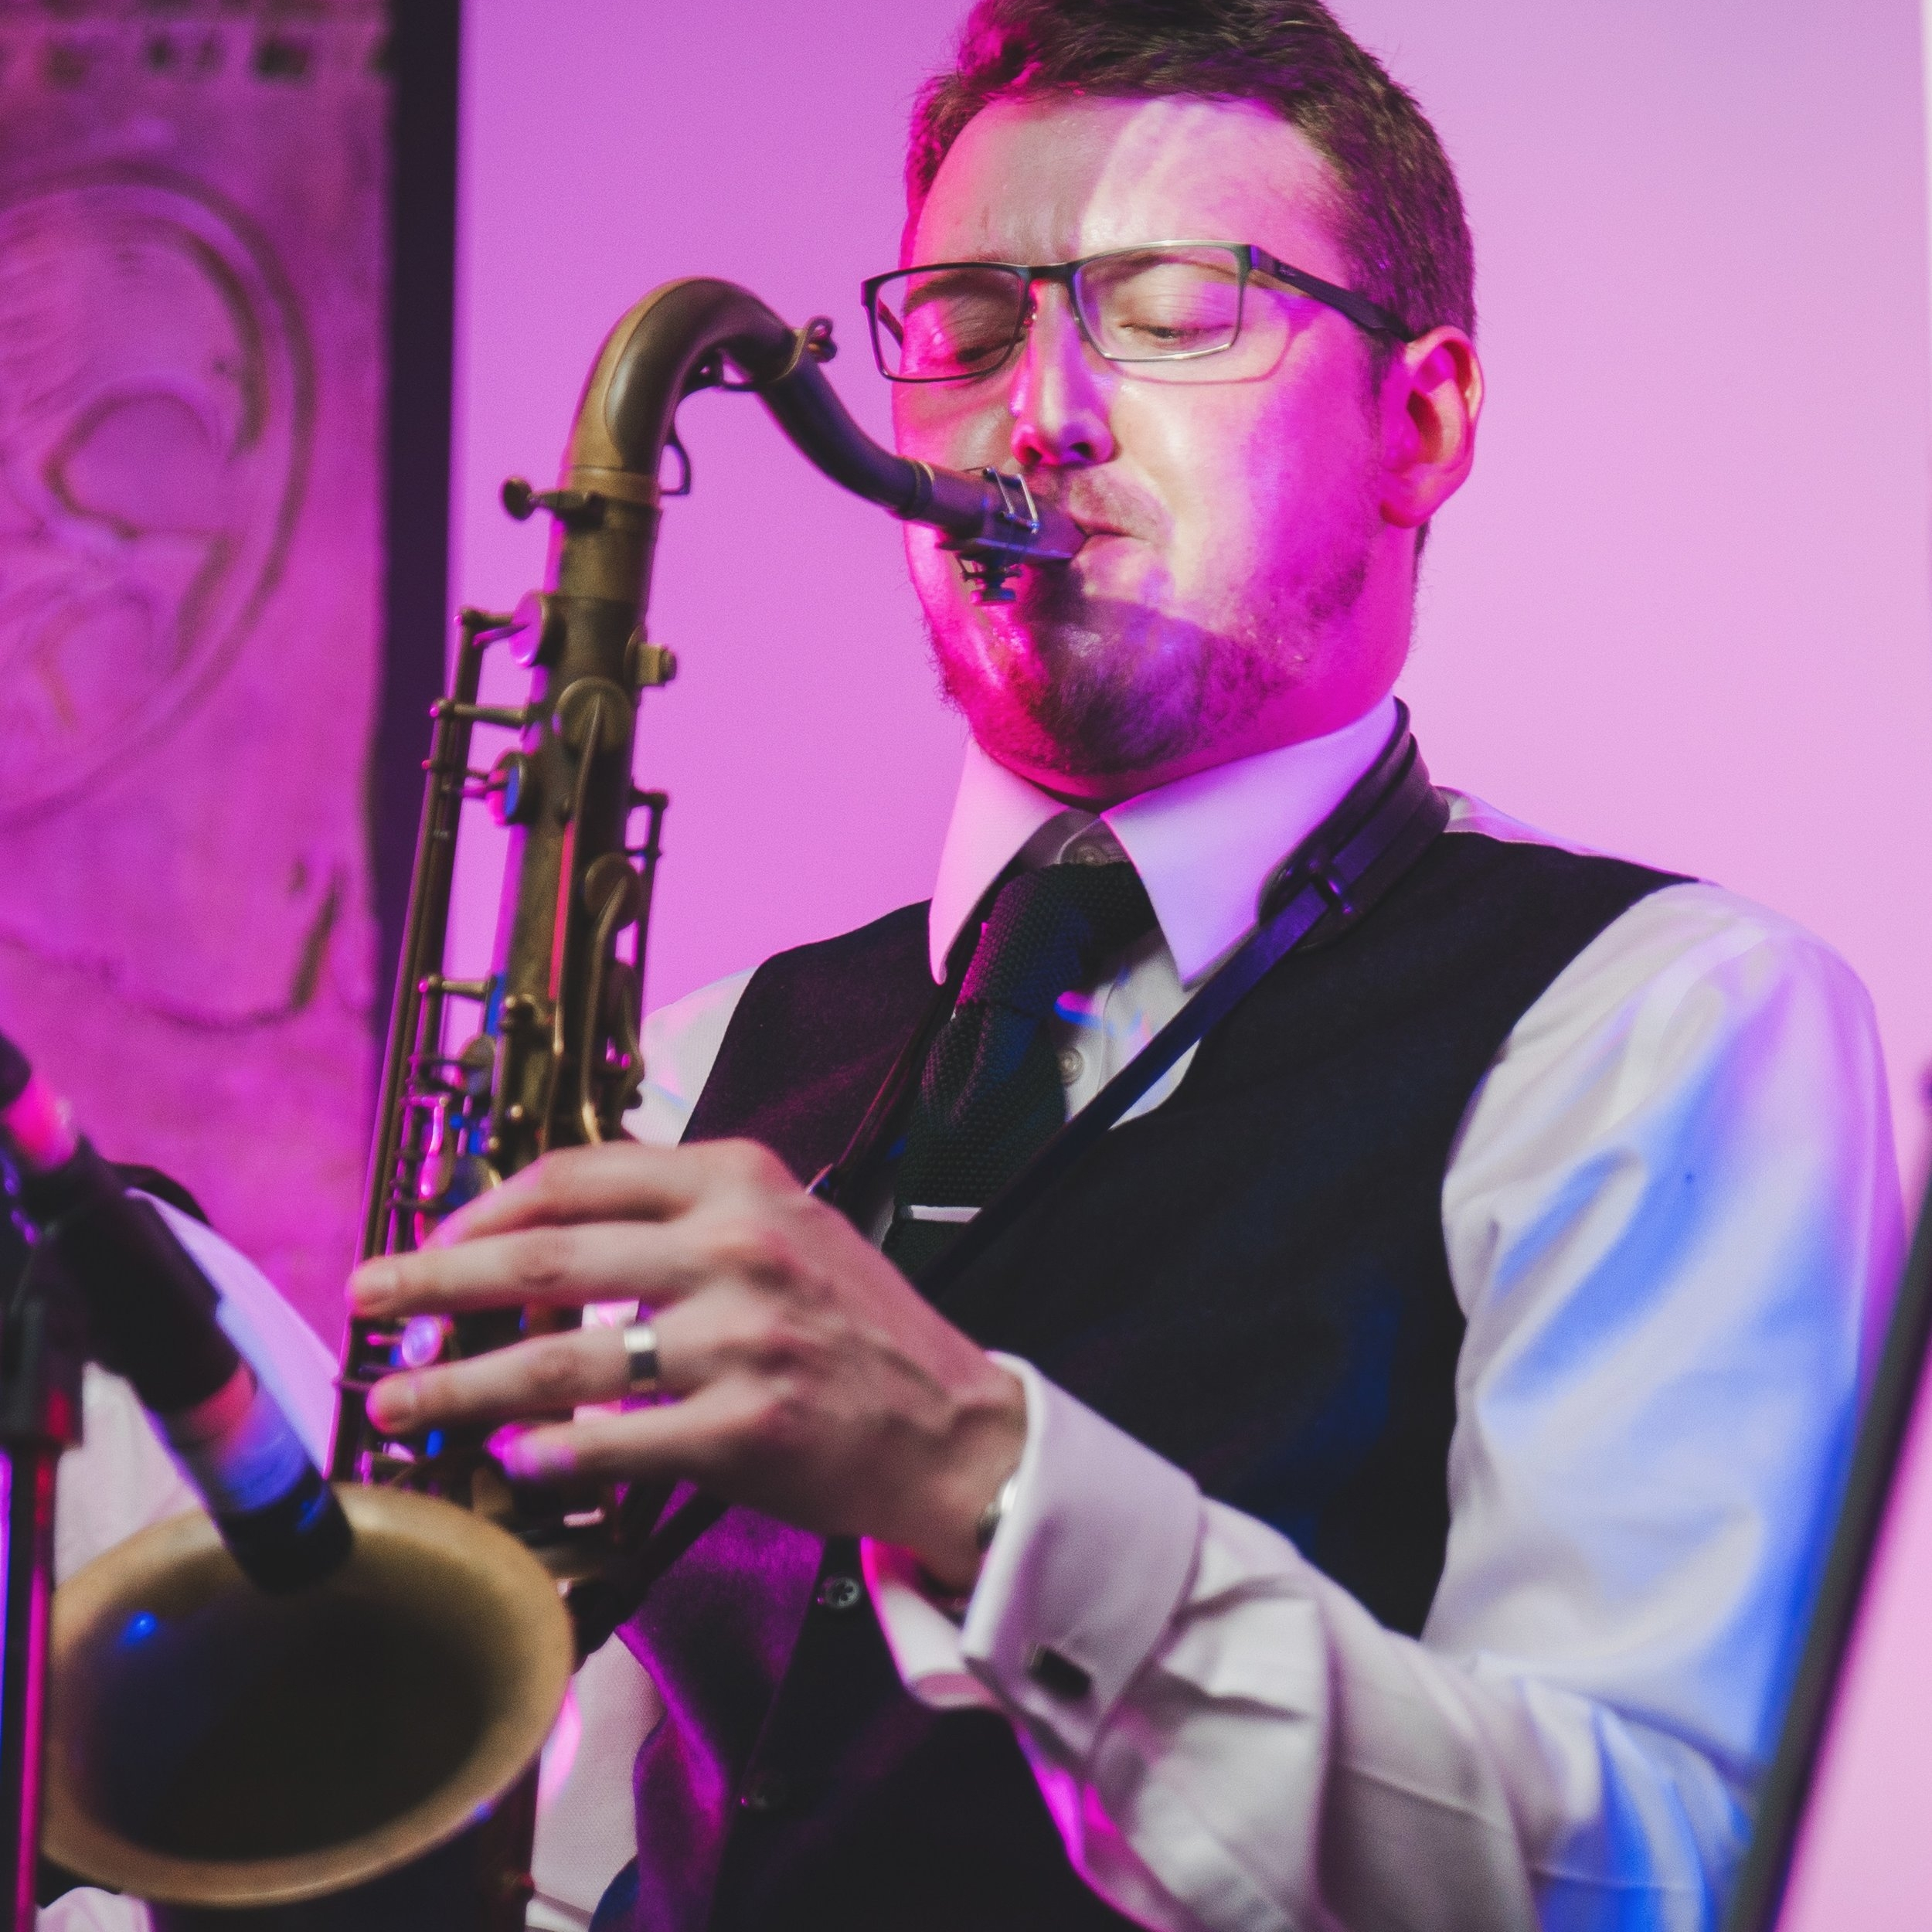 """John Mckillup - Saxophone, keyboards, percussion and backing vocalsSince graduating from the prestigious Jazz degree course at Leeds College of Music course and with an ALCM in Jazz Performance, John moved from Newcastle Upon Tyne to the bright lights of London.Since 2013, John has established himself as the go-to young saxophone player having already played alongside big-names such as Wynton Marsalis, Tim Garland, Bill Bruford, Gary Husband and The Average White Band's Steve Ferrone.John joined The Dark Blues in 2015 but continues to perform across the globe with various jazz outfits and as an artist in his own right. He's even been known to throw in the odd rap as part of his stint with The Dark Blues!Favourite Dark Blues party song: """"Don't stop me now"""" by Queen – """"As soon as Lol sings the first words, everyone on the dance floor goes crazy! Plus I get to play the Brian May guitar solo on tenor sax."""""""